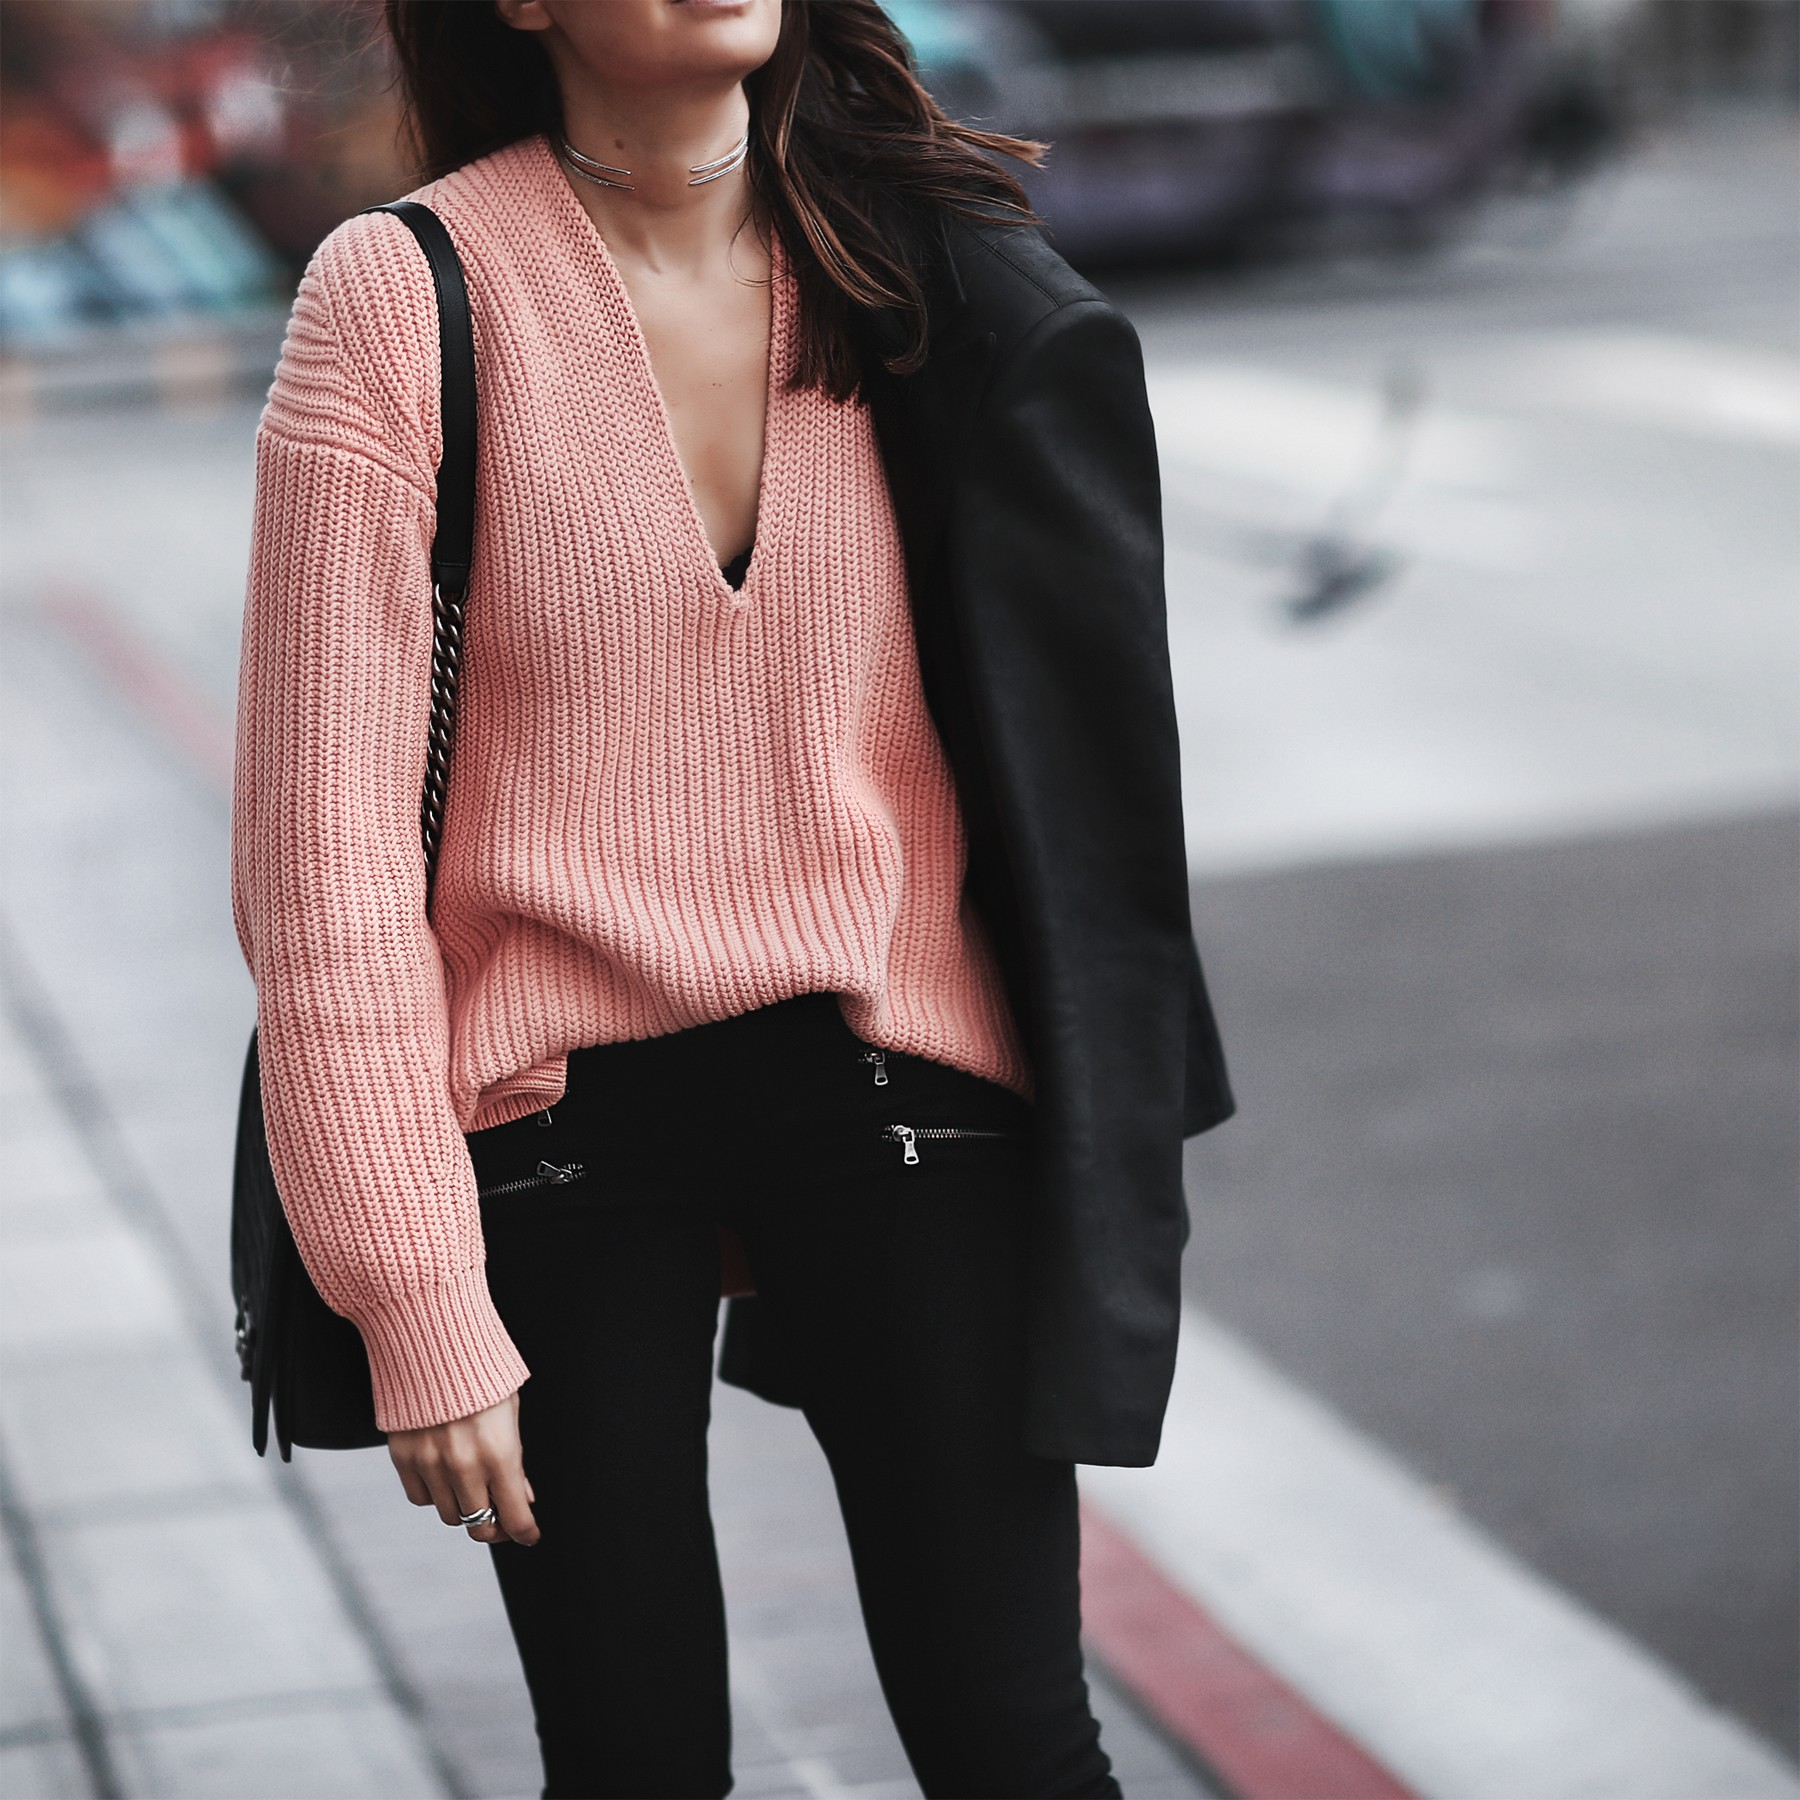 coral sweater, skinny jeans with zippers, black blazer